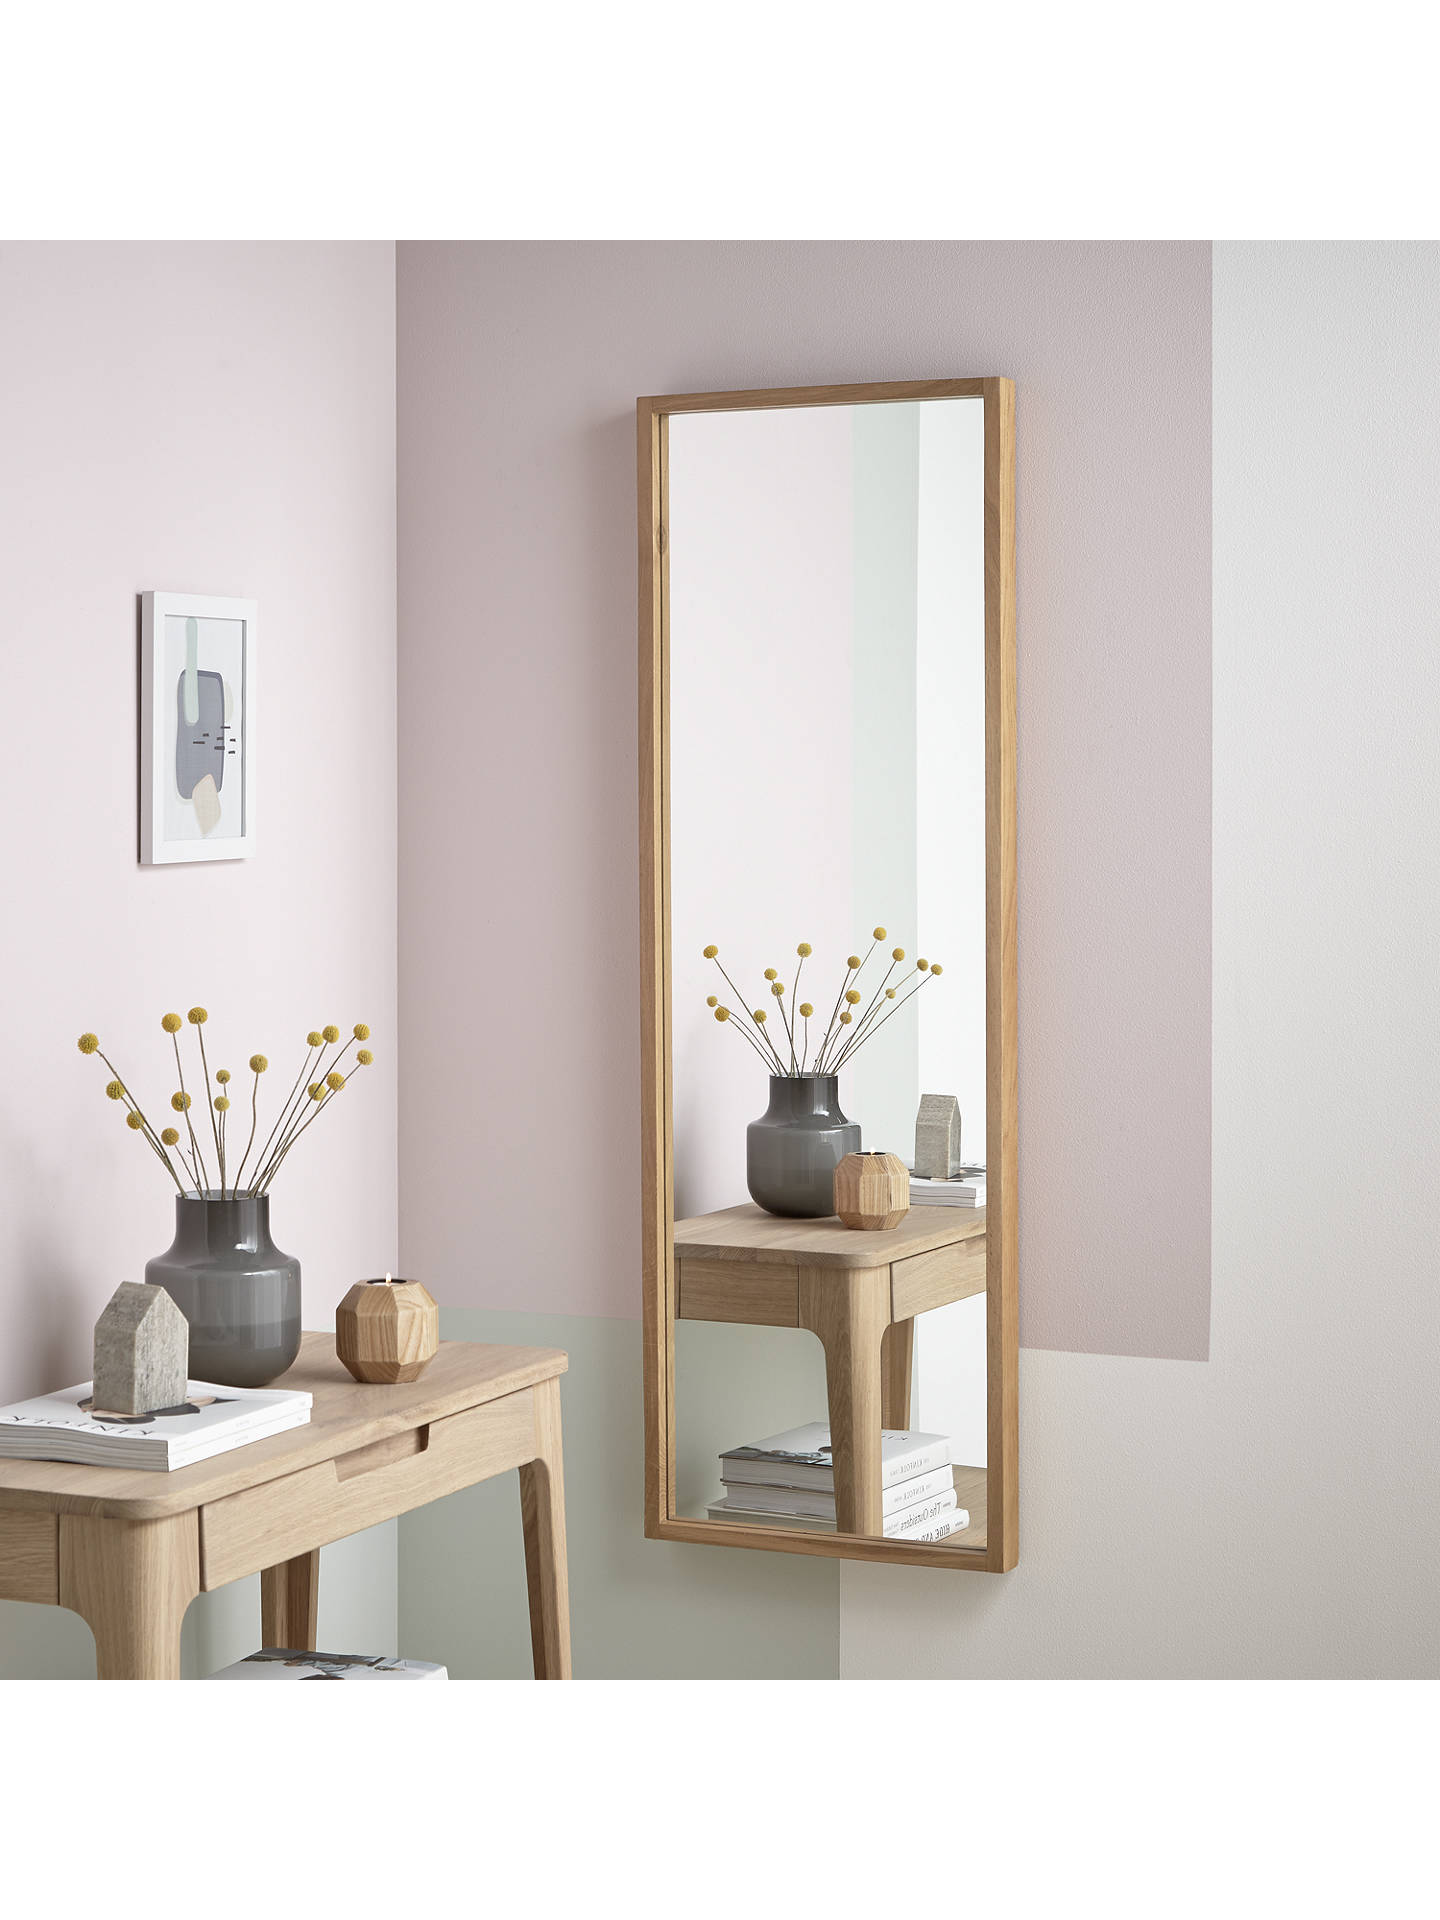 BuyJohn Lewis & Partners Scandi Oak Mirror, 135 x 45cm, Natural Online at johnlewis.com